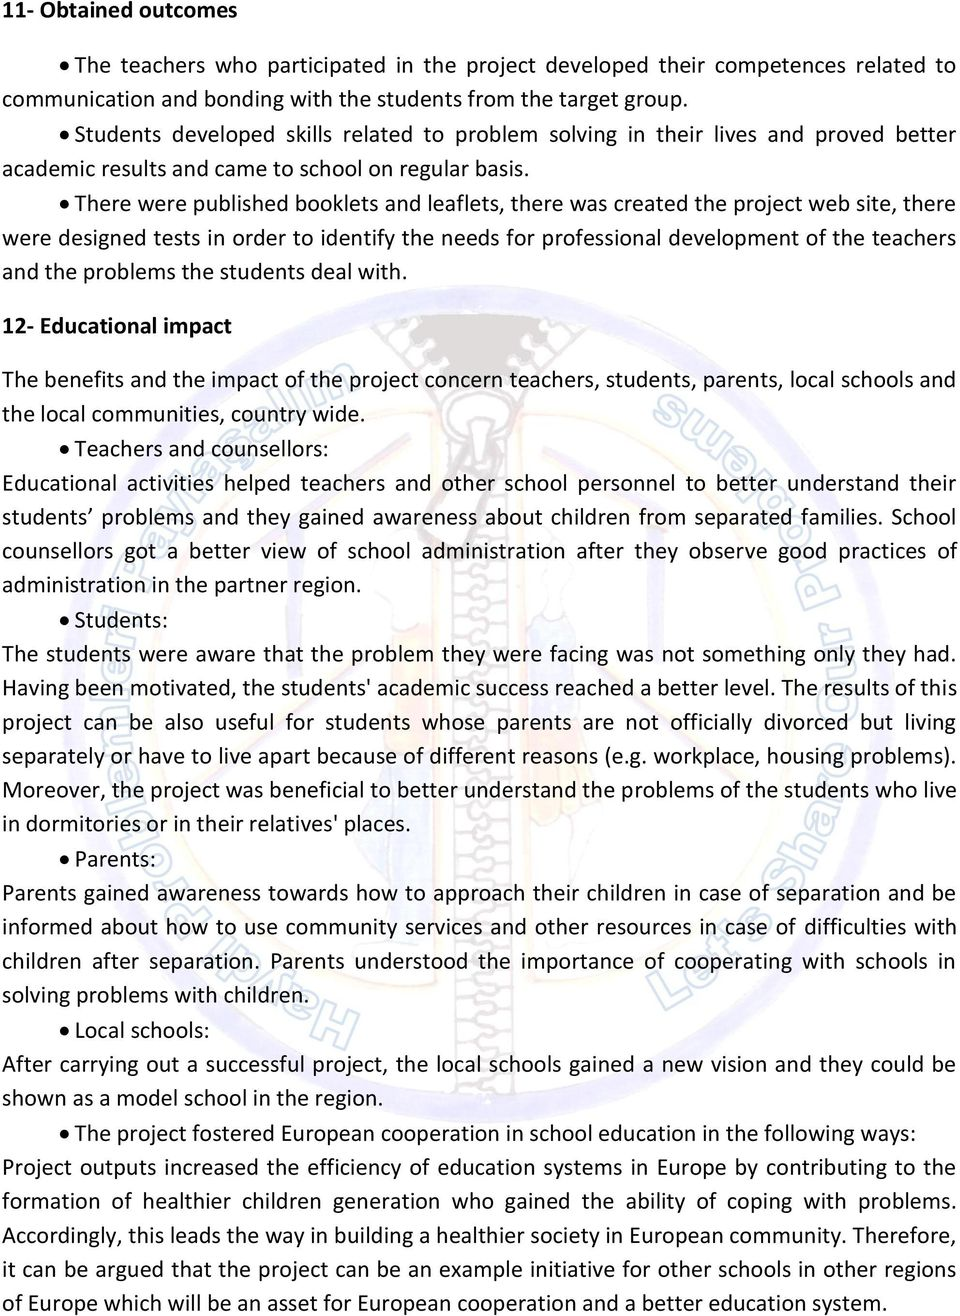 There were published booklets and leaflets, there was created the project web site, there were designed tests in order to identify the needs for professional development of the teachers and the